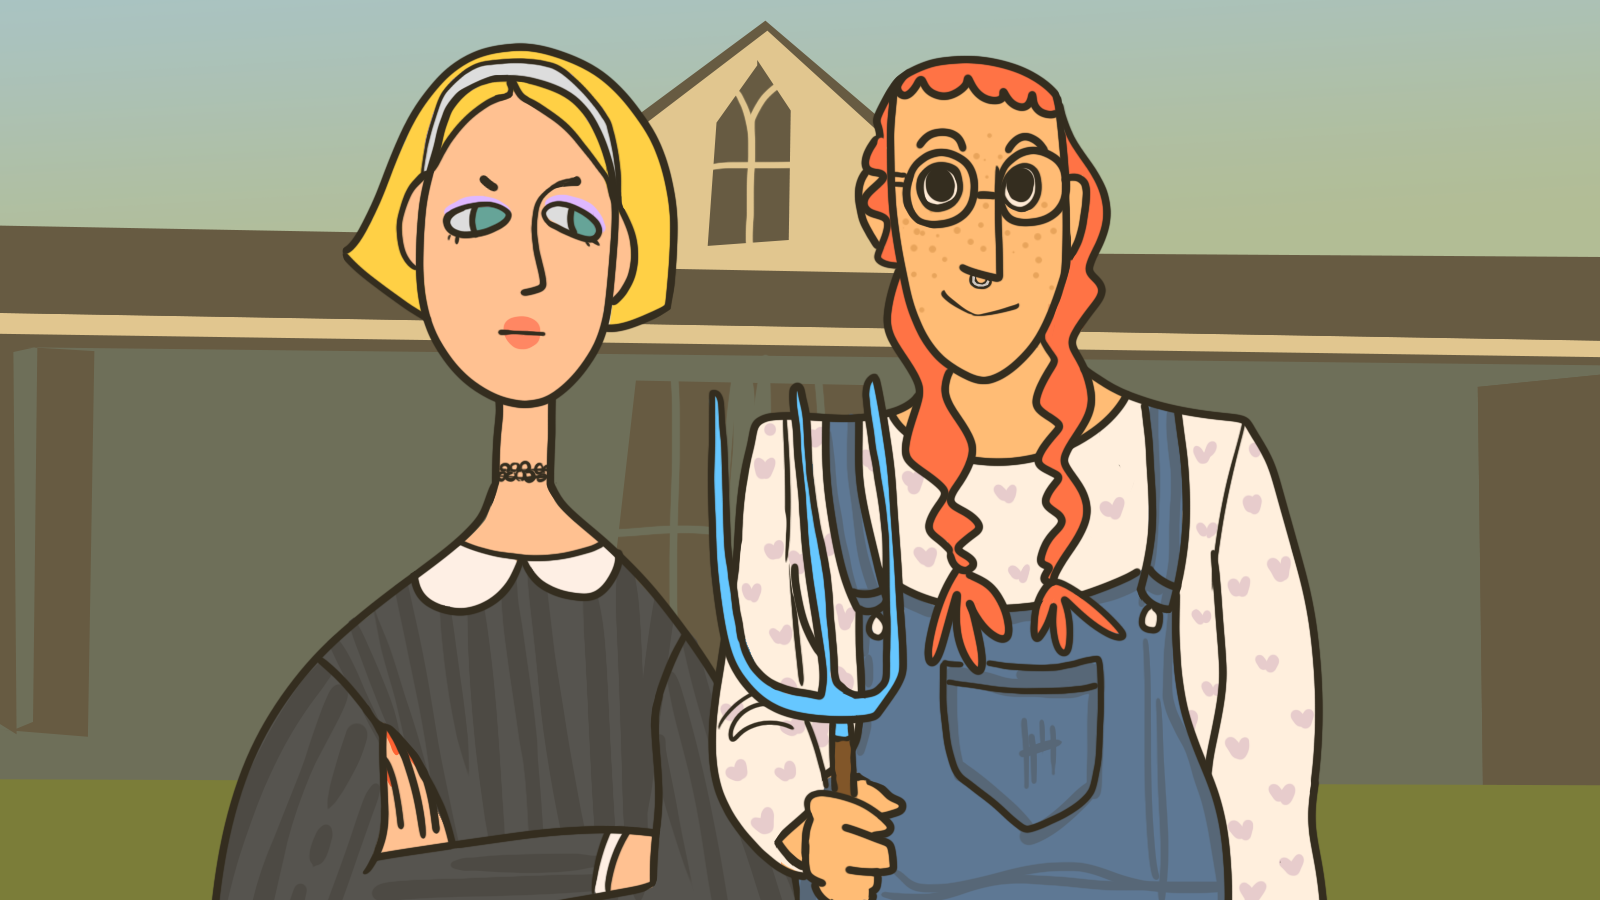 Illustration by Sid Champagne   [Image description: Two people stand in the foreground, emulating the painting American Gothic by Grant Wood. The person to the left has blonde hair, a black dress, and has their arms crossed over their chest-a stern expression on their face. The person to the right has two orange braids, is wearing overalls, and holding a pickaxe and has a smile on their face. In the background is a house]